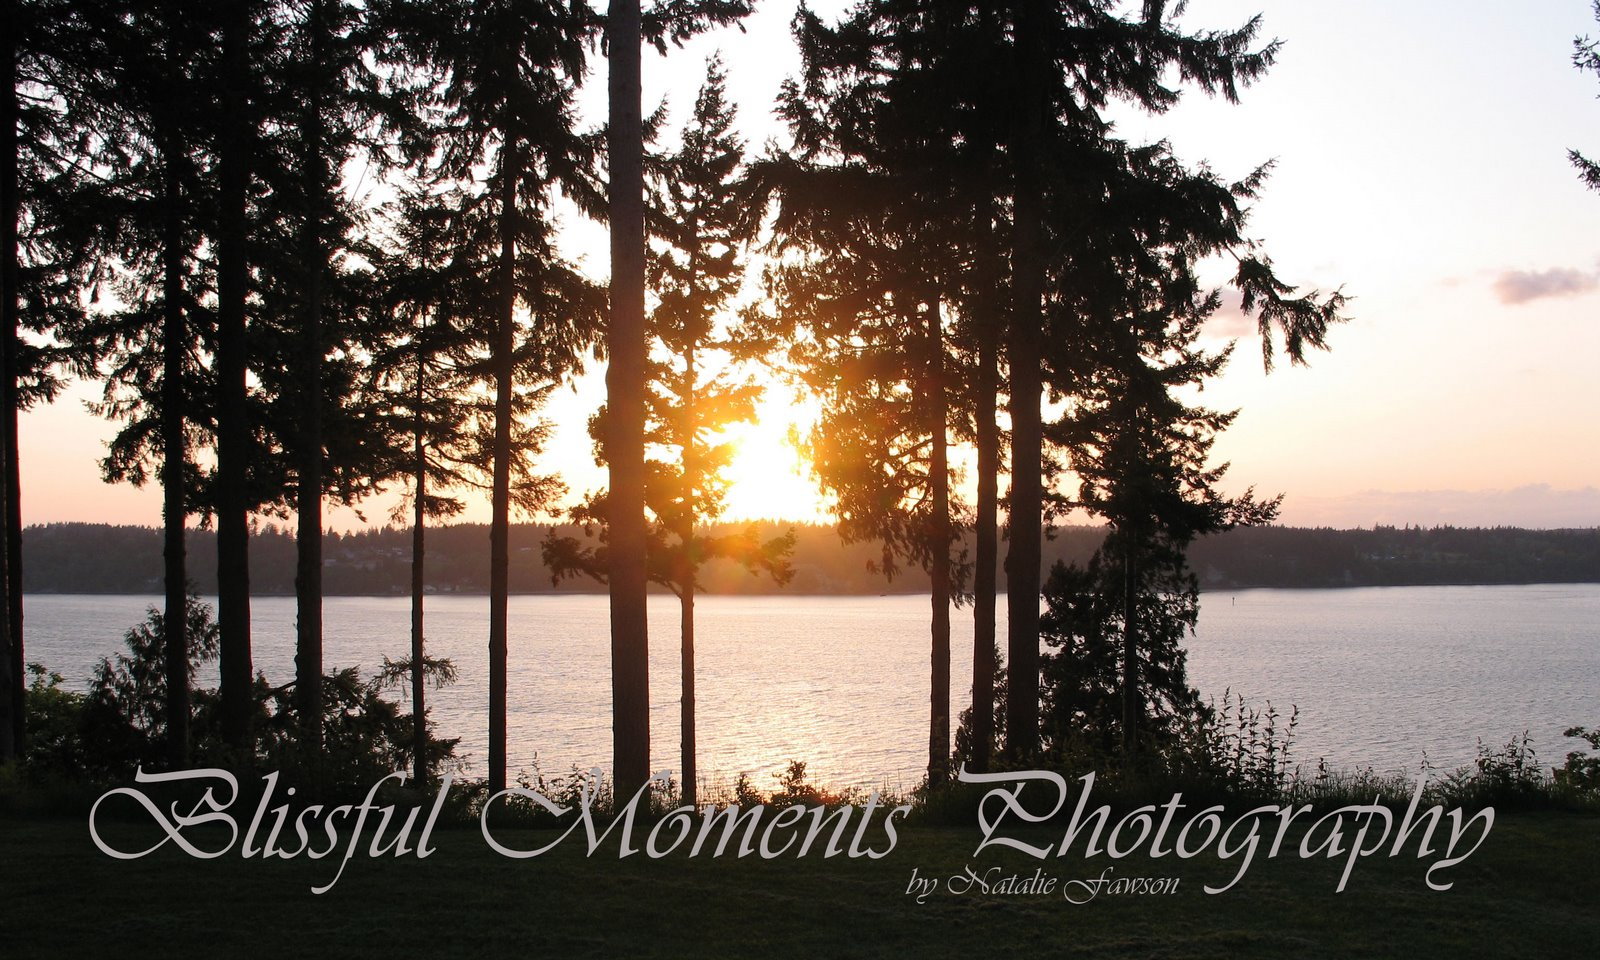 Blissful Moments Photography